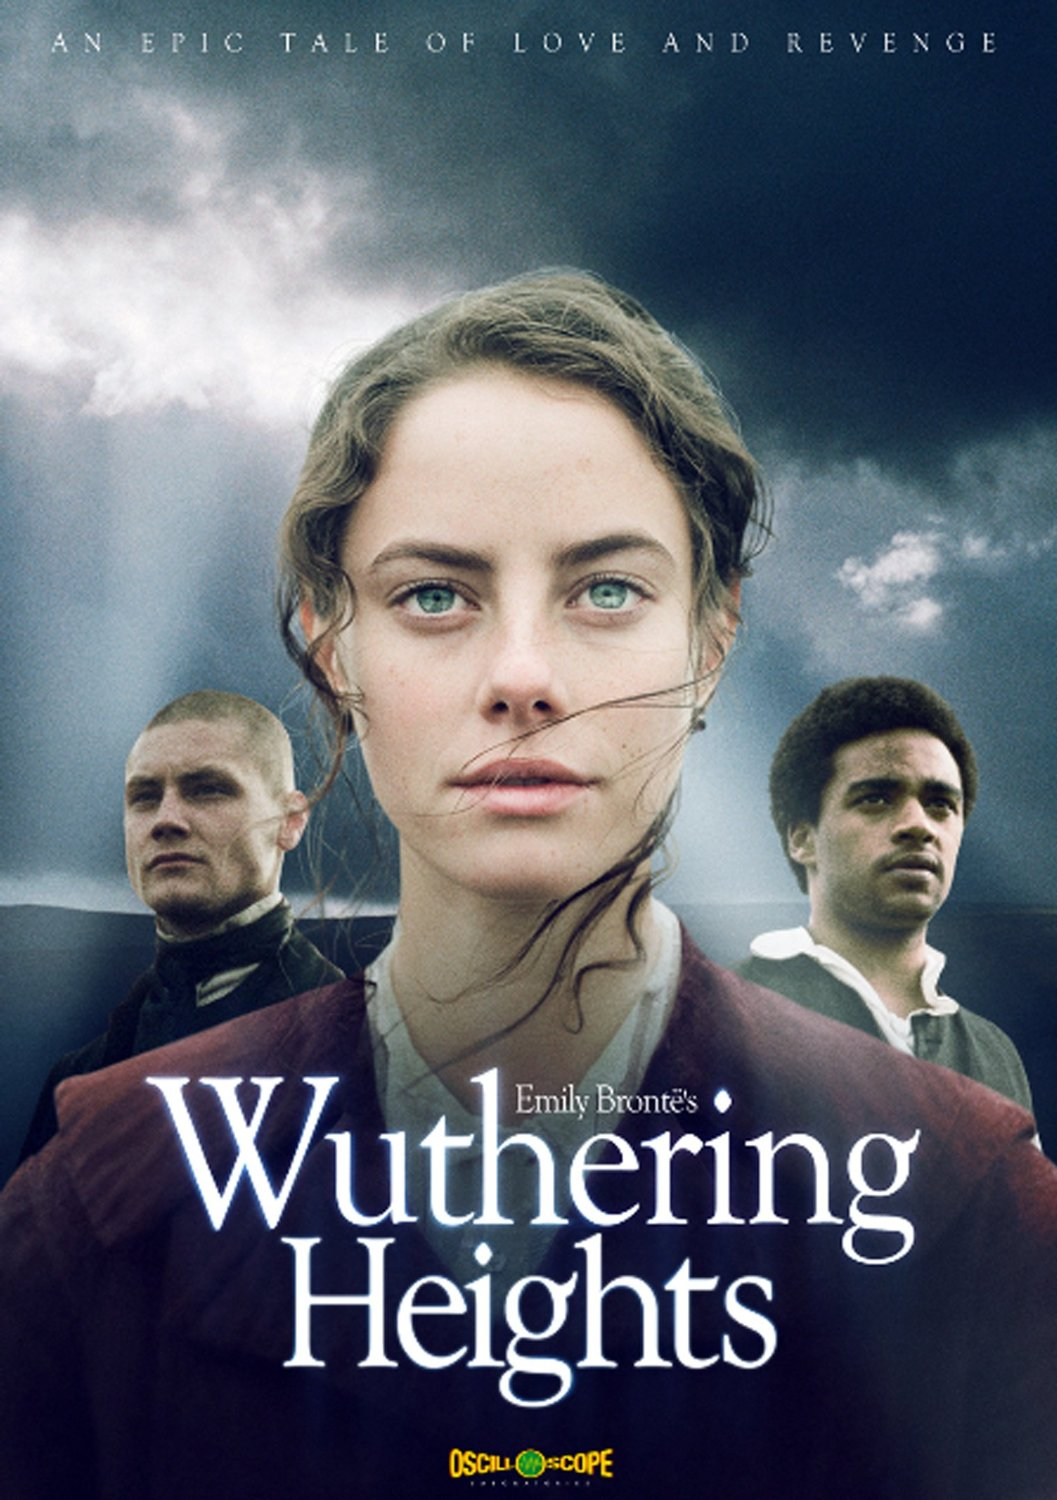 wuthering heights linton wuthering heights film adaptations wiki  wuthering heights film adaptations wiki fandom powered wuthering heights 2011